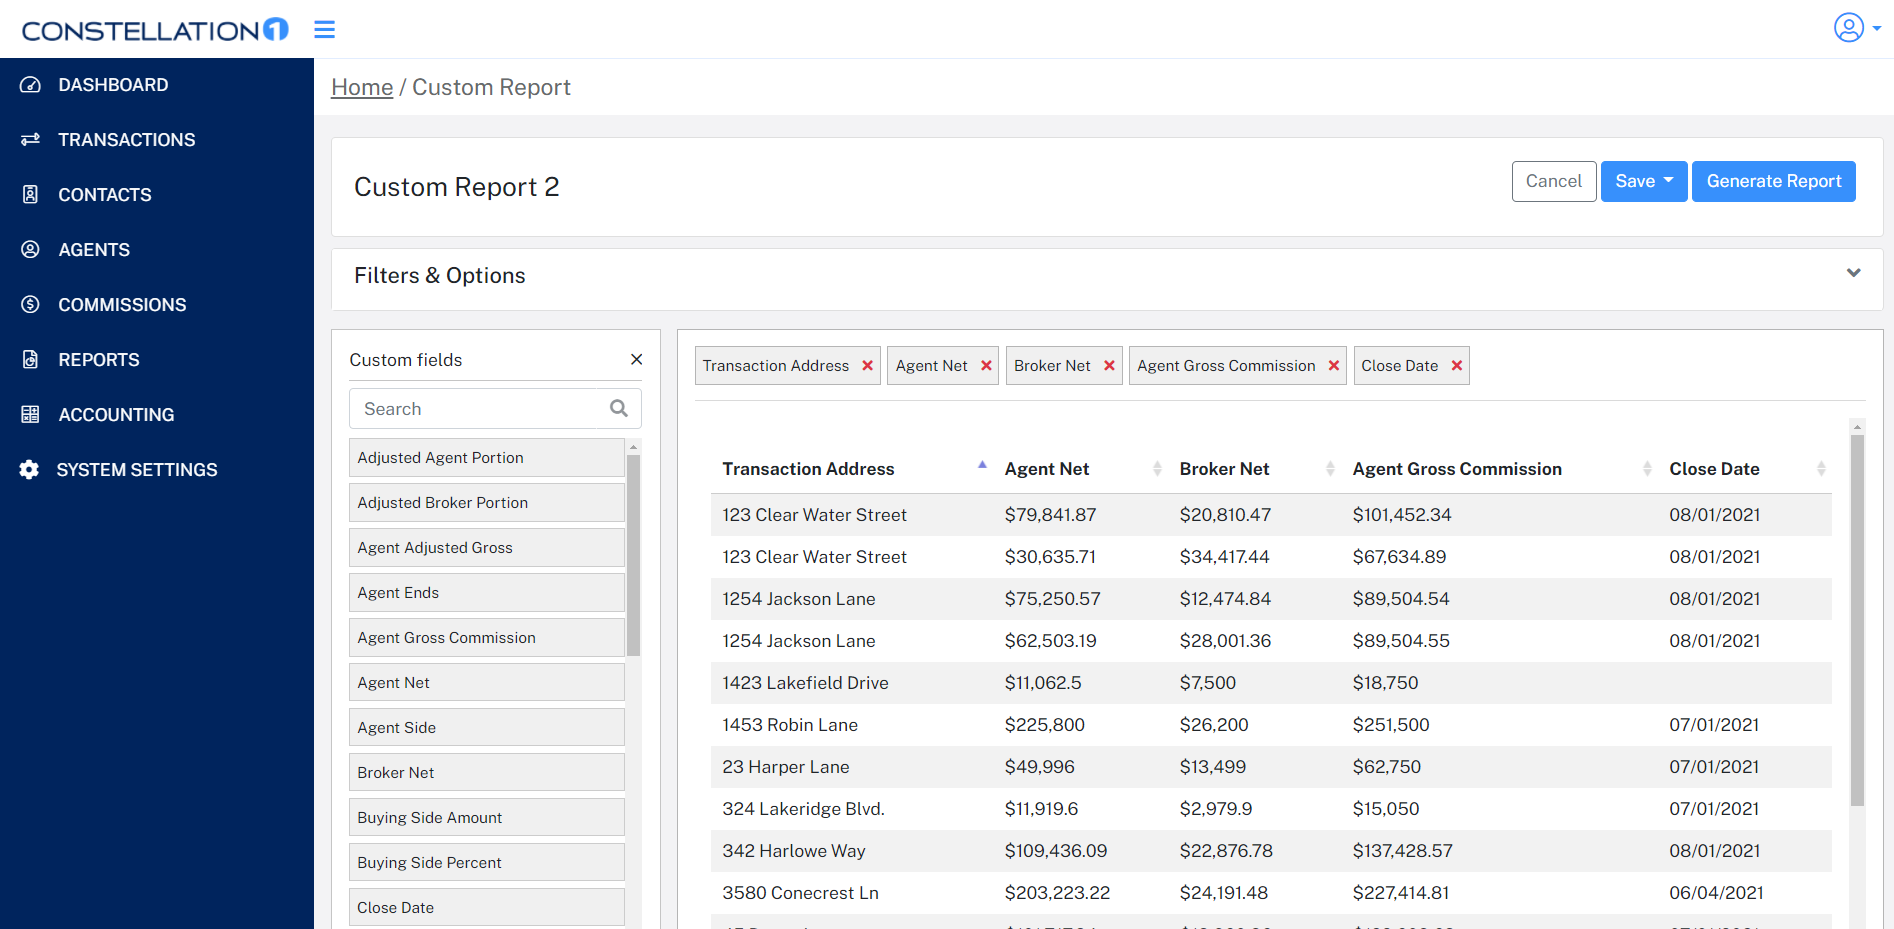 Screenshot of customizable drag-and-drop reports for visualizing key commissions data in the Constellation1 Commissions app